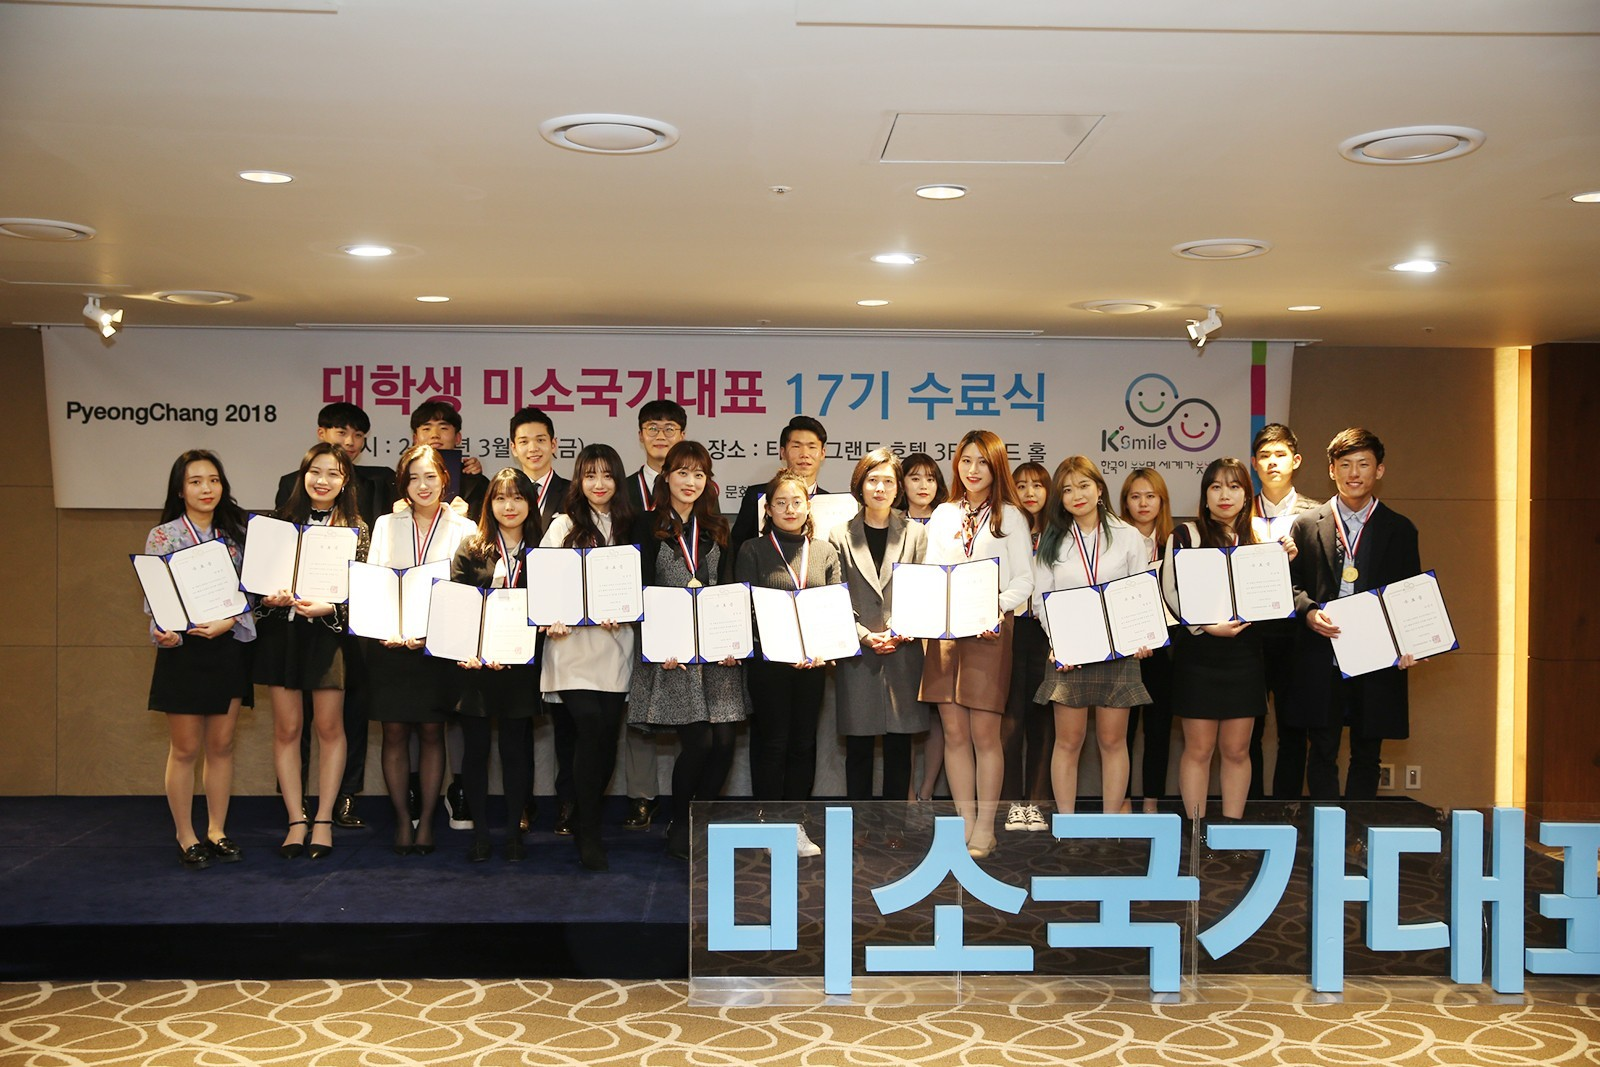 Completion Ceremony for the 17th University Students' National Smile Team